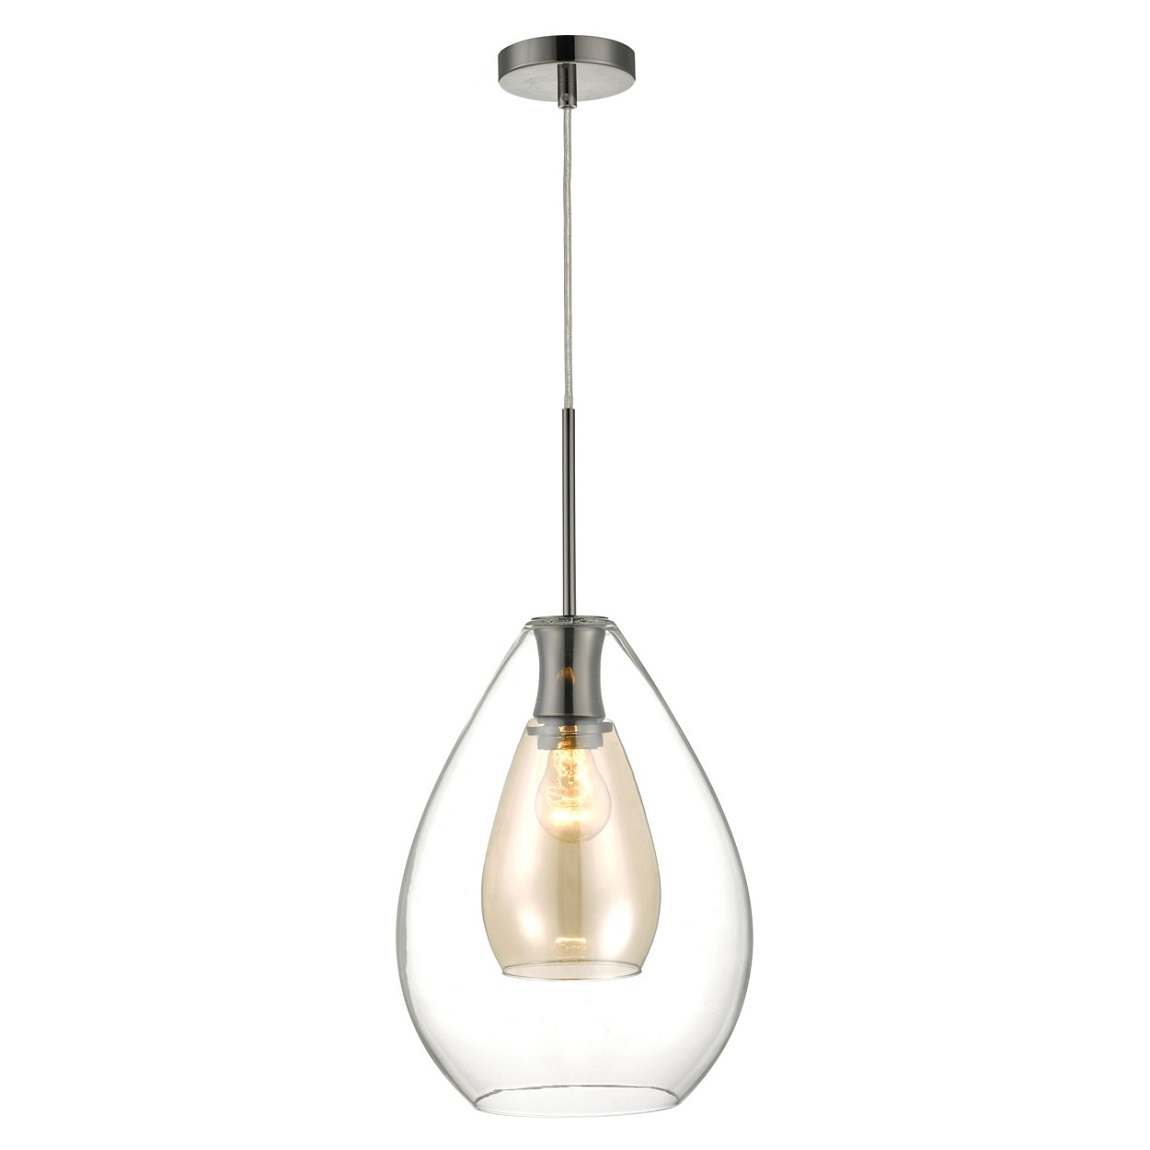 Debenhams Home Collection 'Caroline' Pendant Ceiling Light